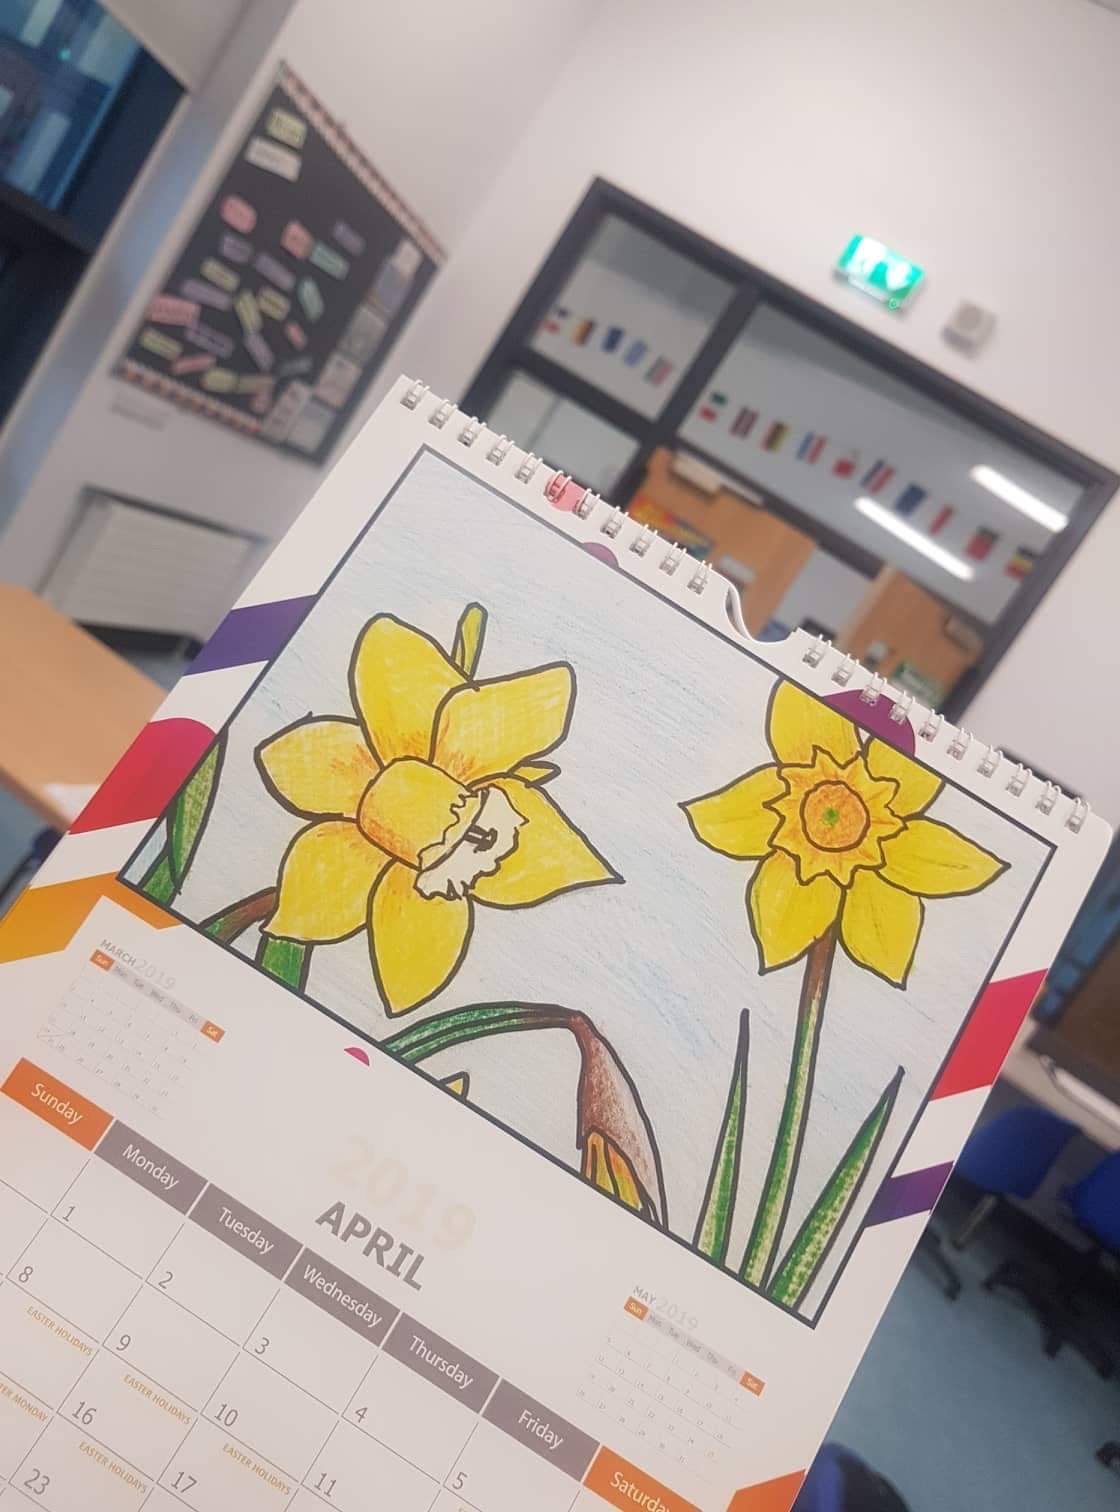 Images from the school calendar